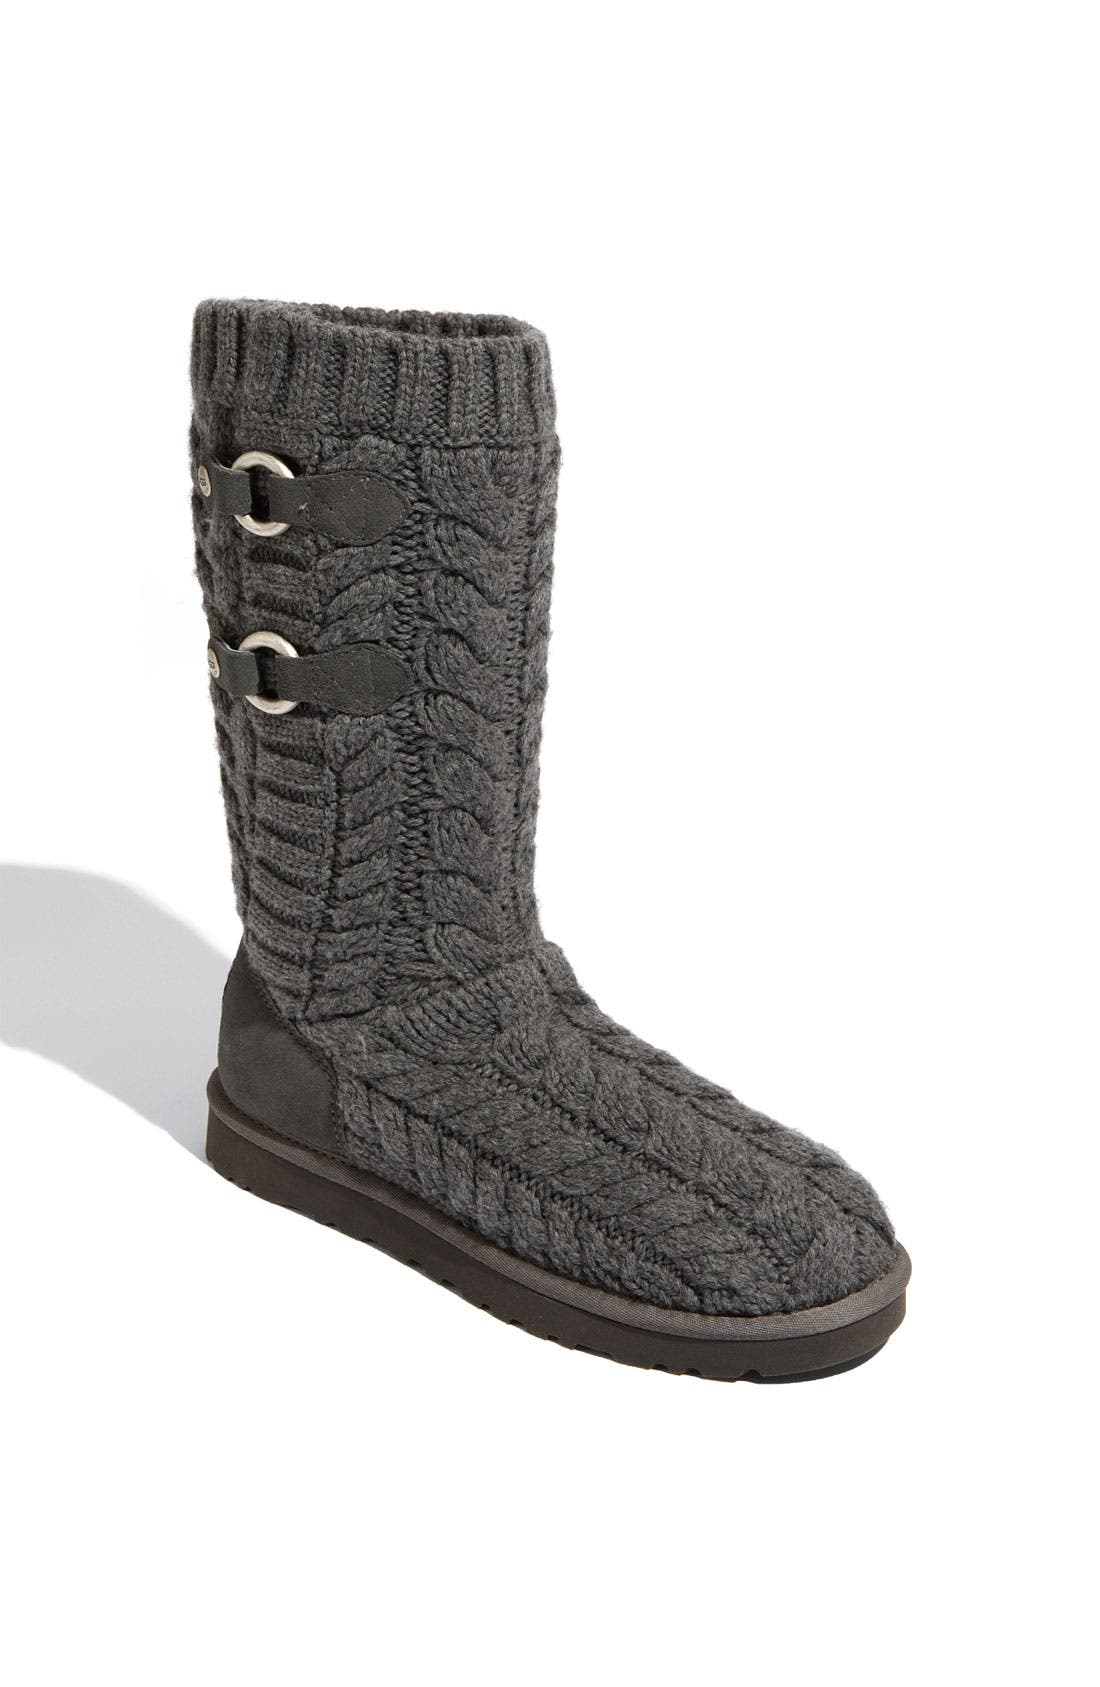 Alternate Image 1 Selected - UGG® Australia 'Tularosa Route Cable' Boot (Women)